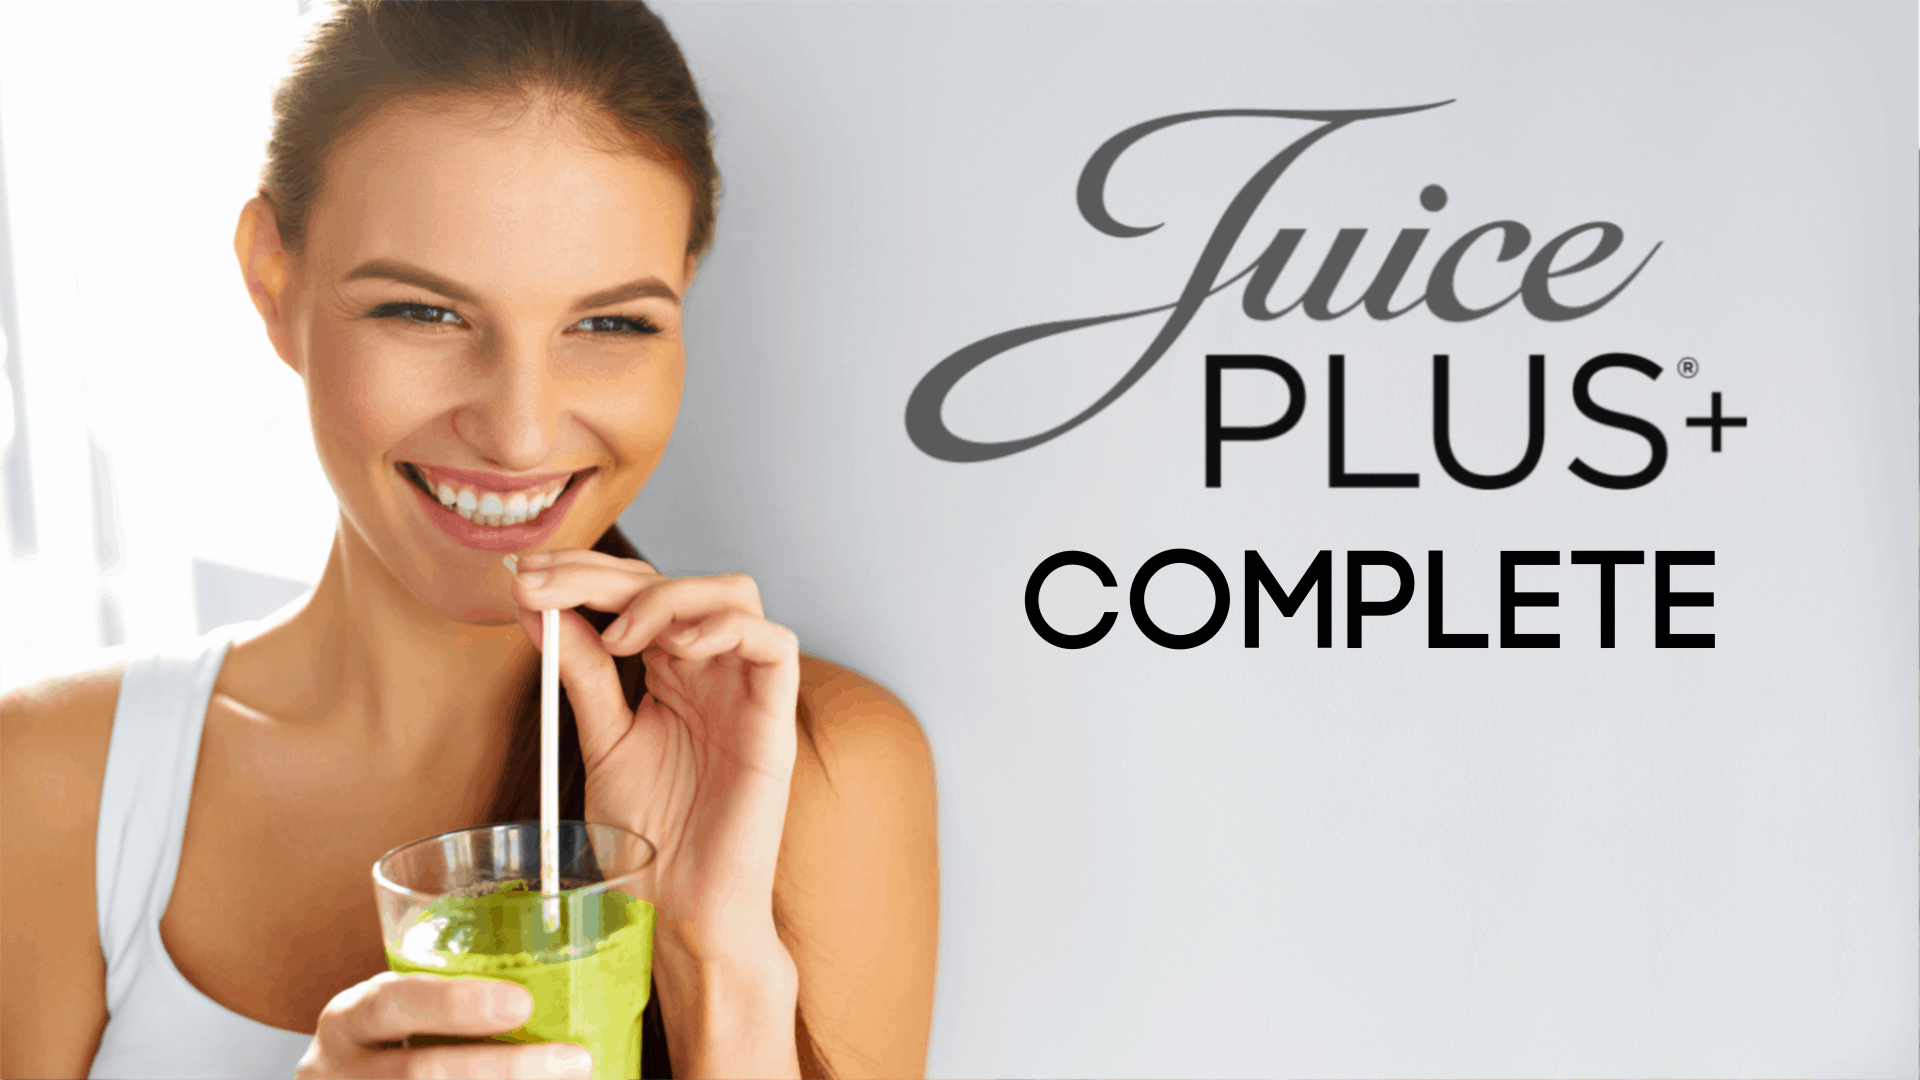 Juice Plus+ Complete Brochure Image